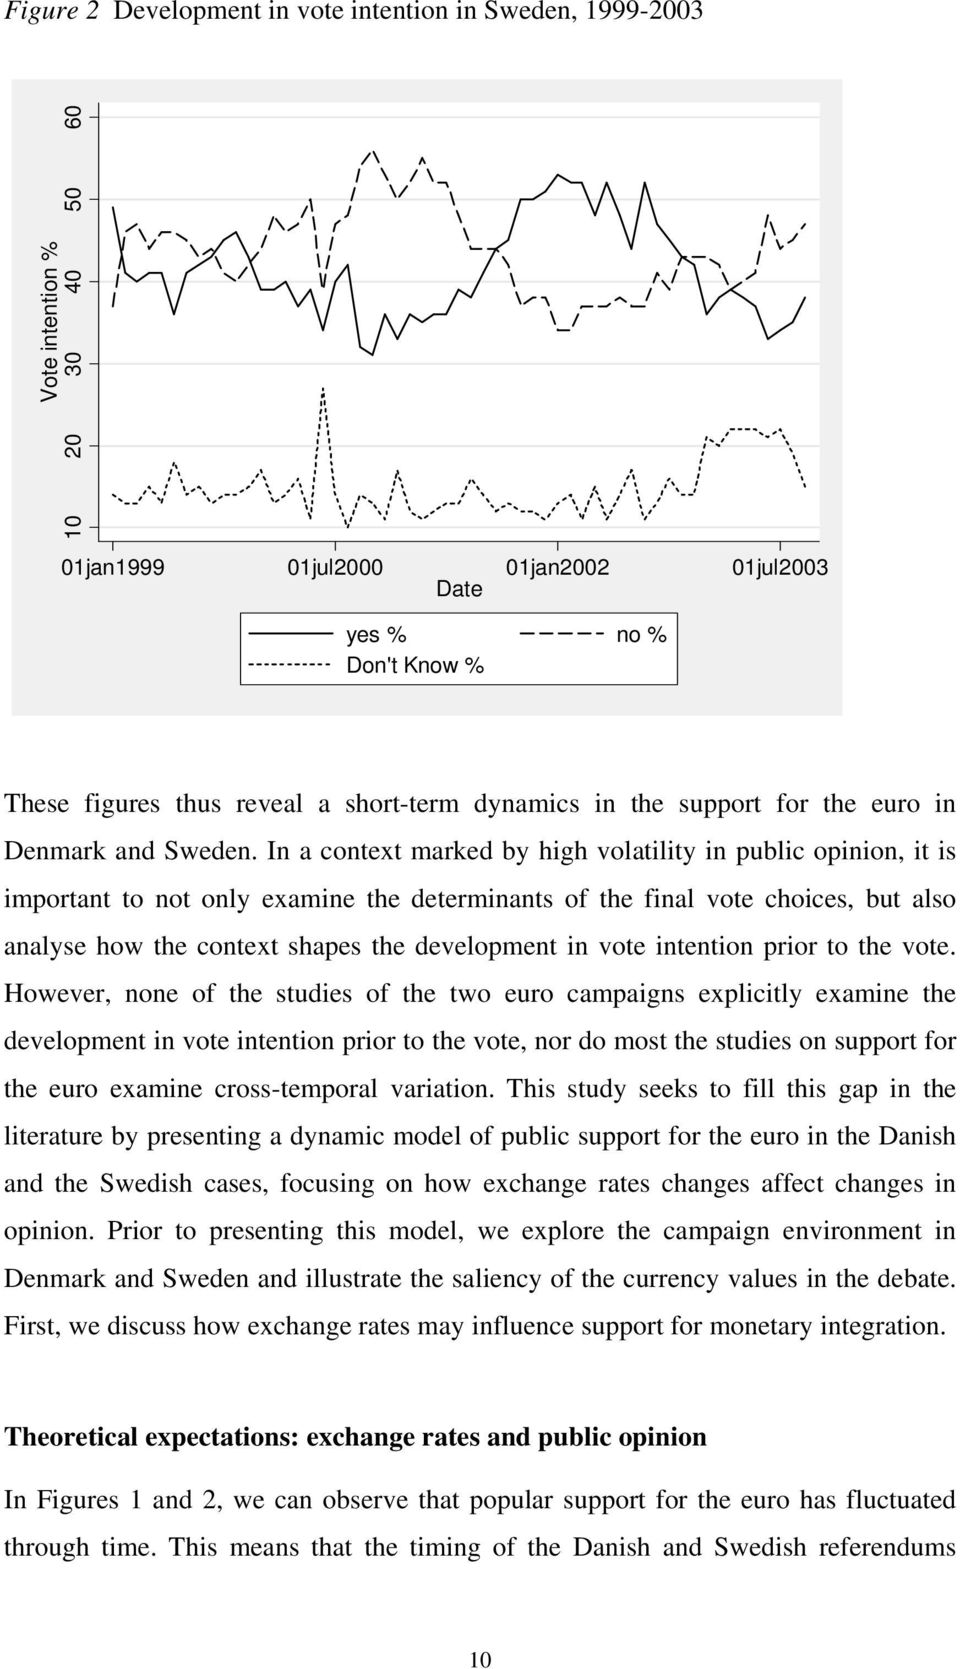 In a context marked by high volatility in public opinion, it is important to not only examine the determinants of the final vote choices, but also analyse how the context shapes the development in